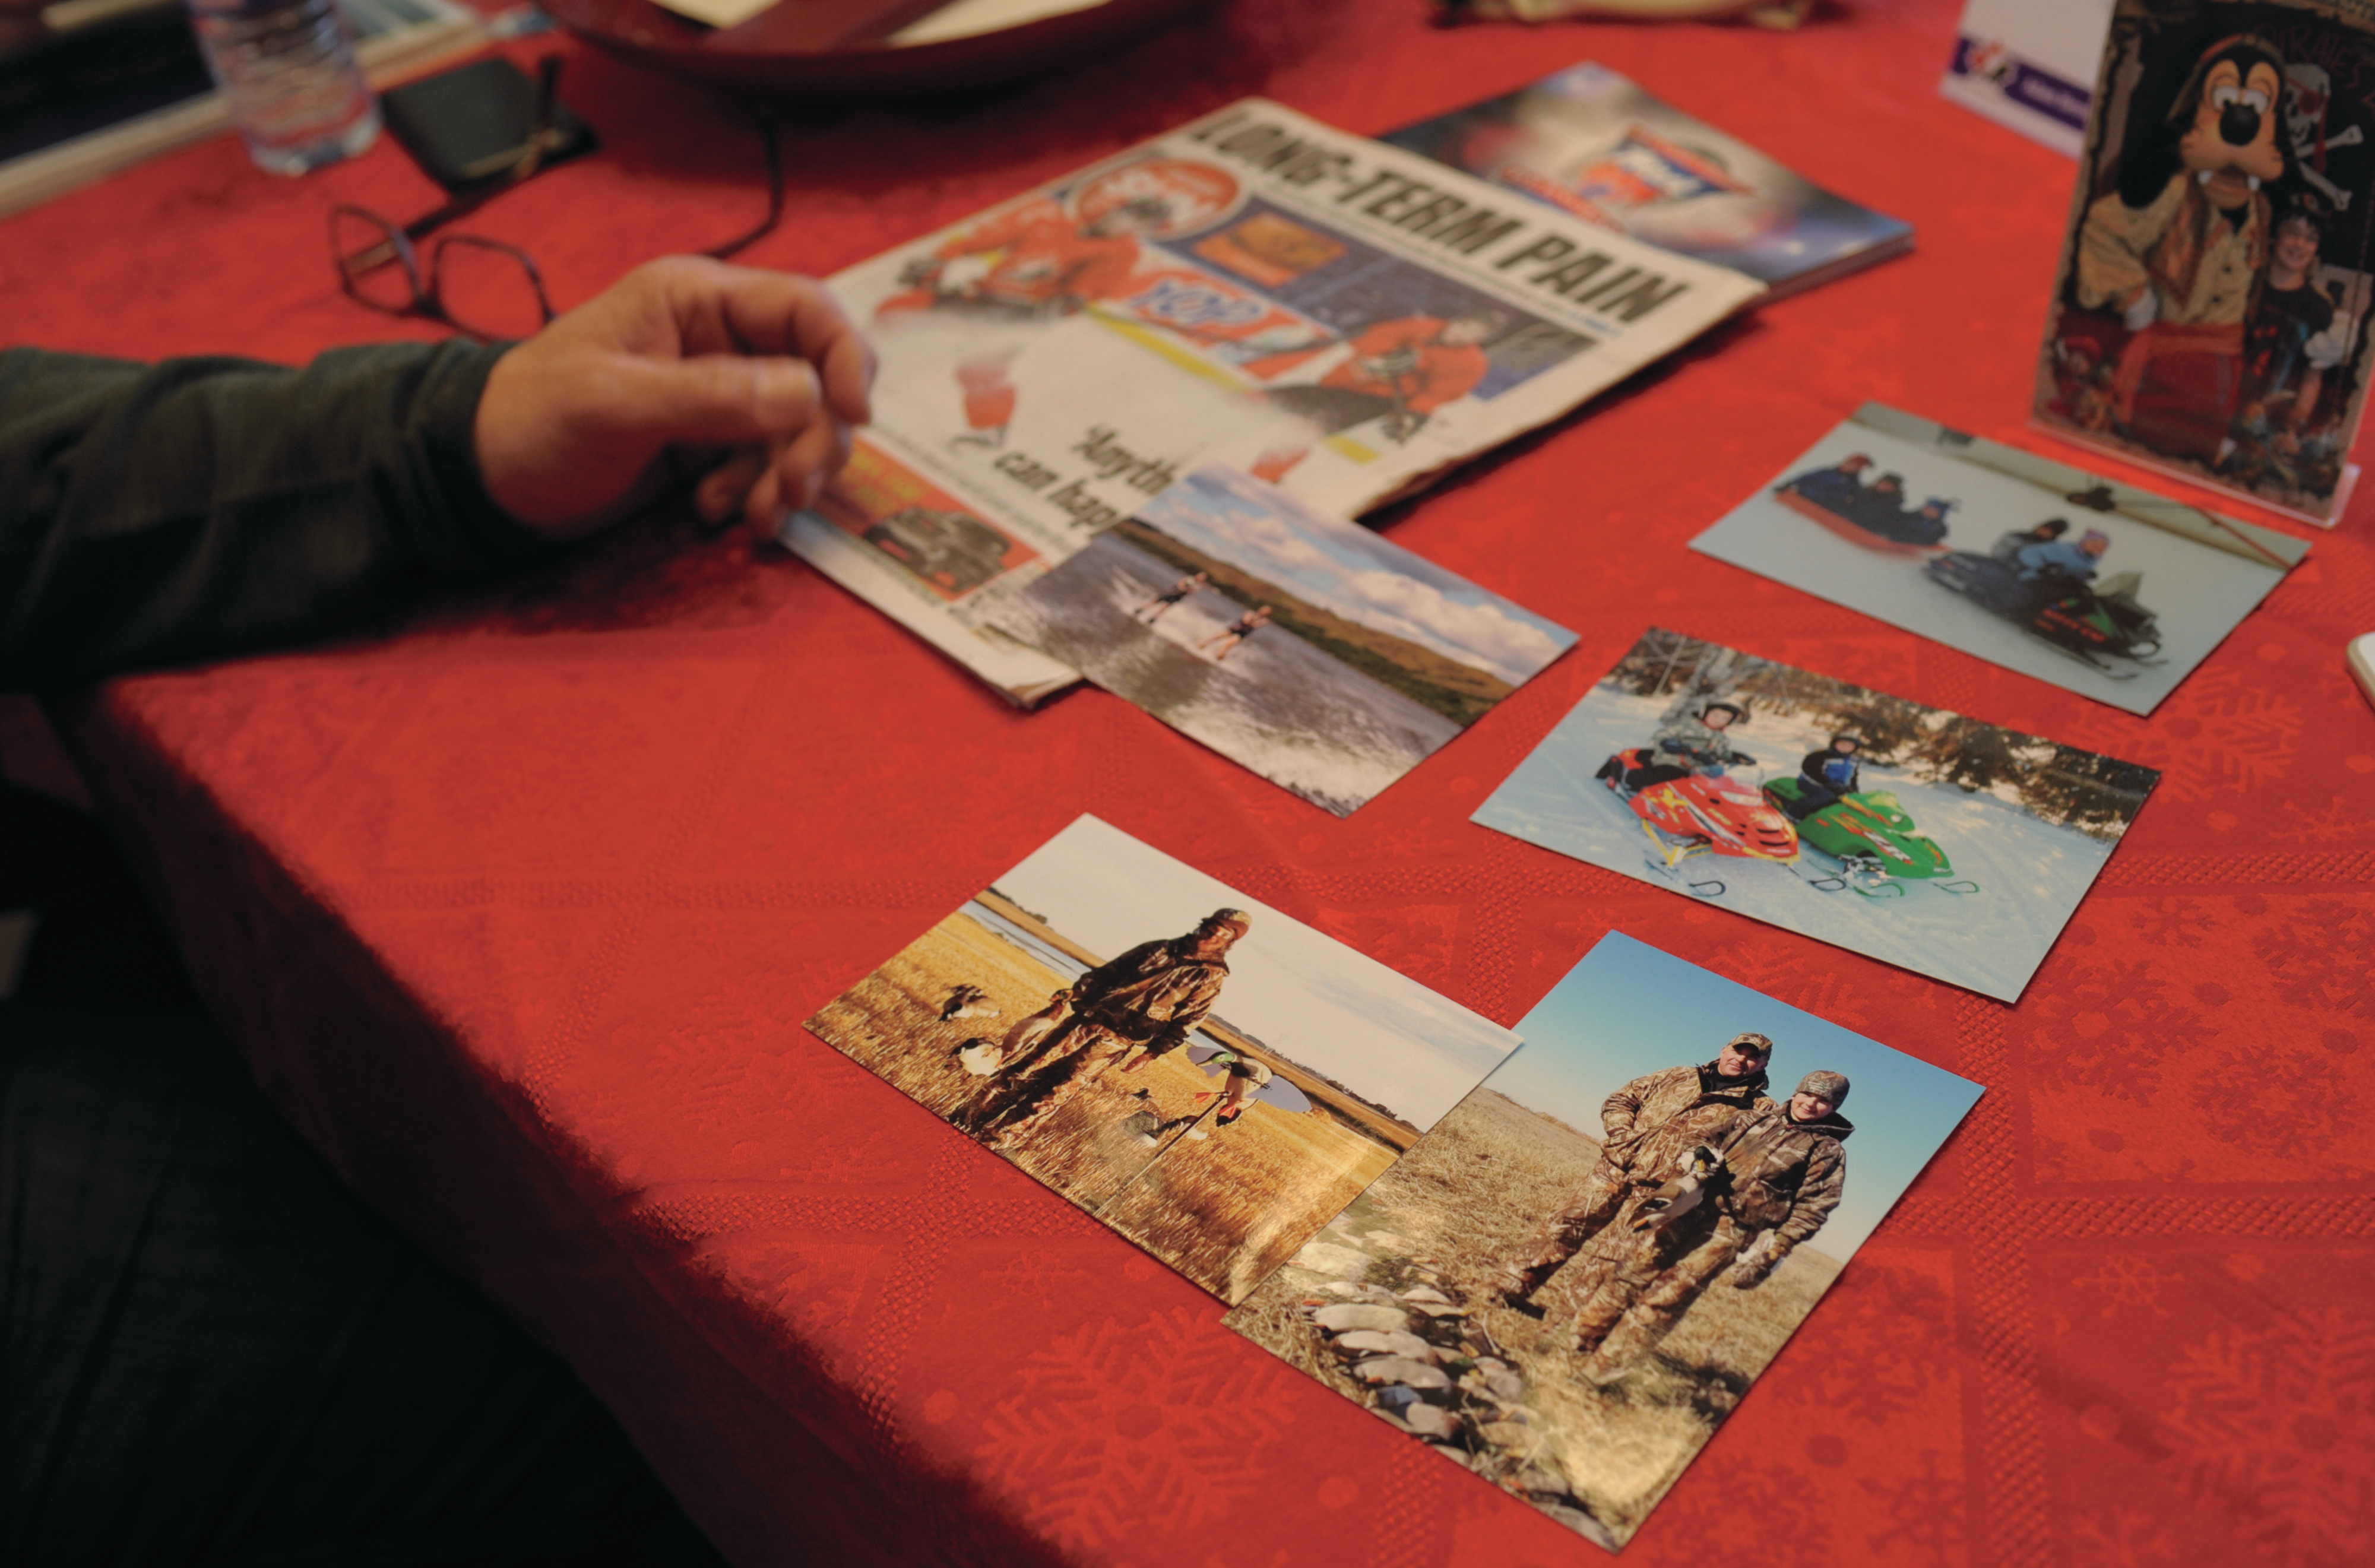 Russell Herold goes through family photos (Photograph by Mark Taylor)